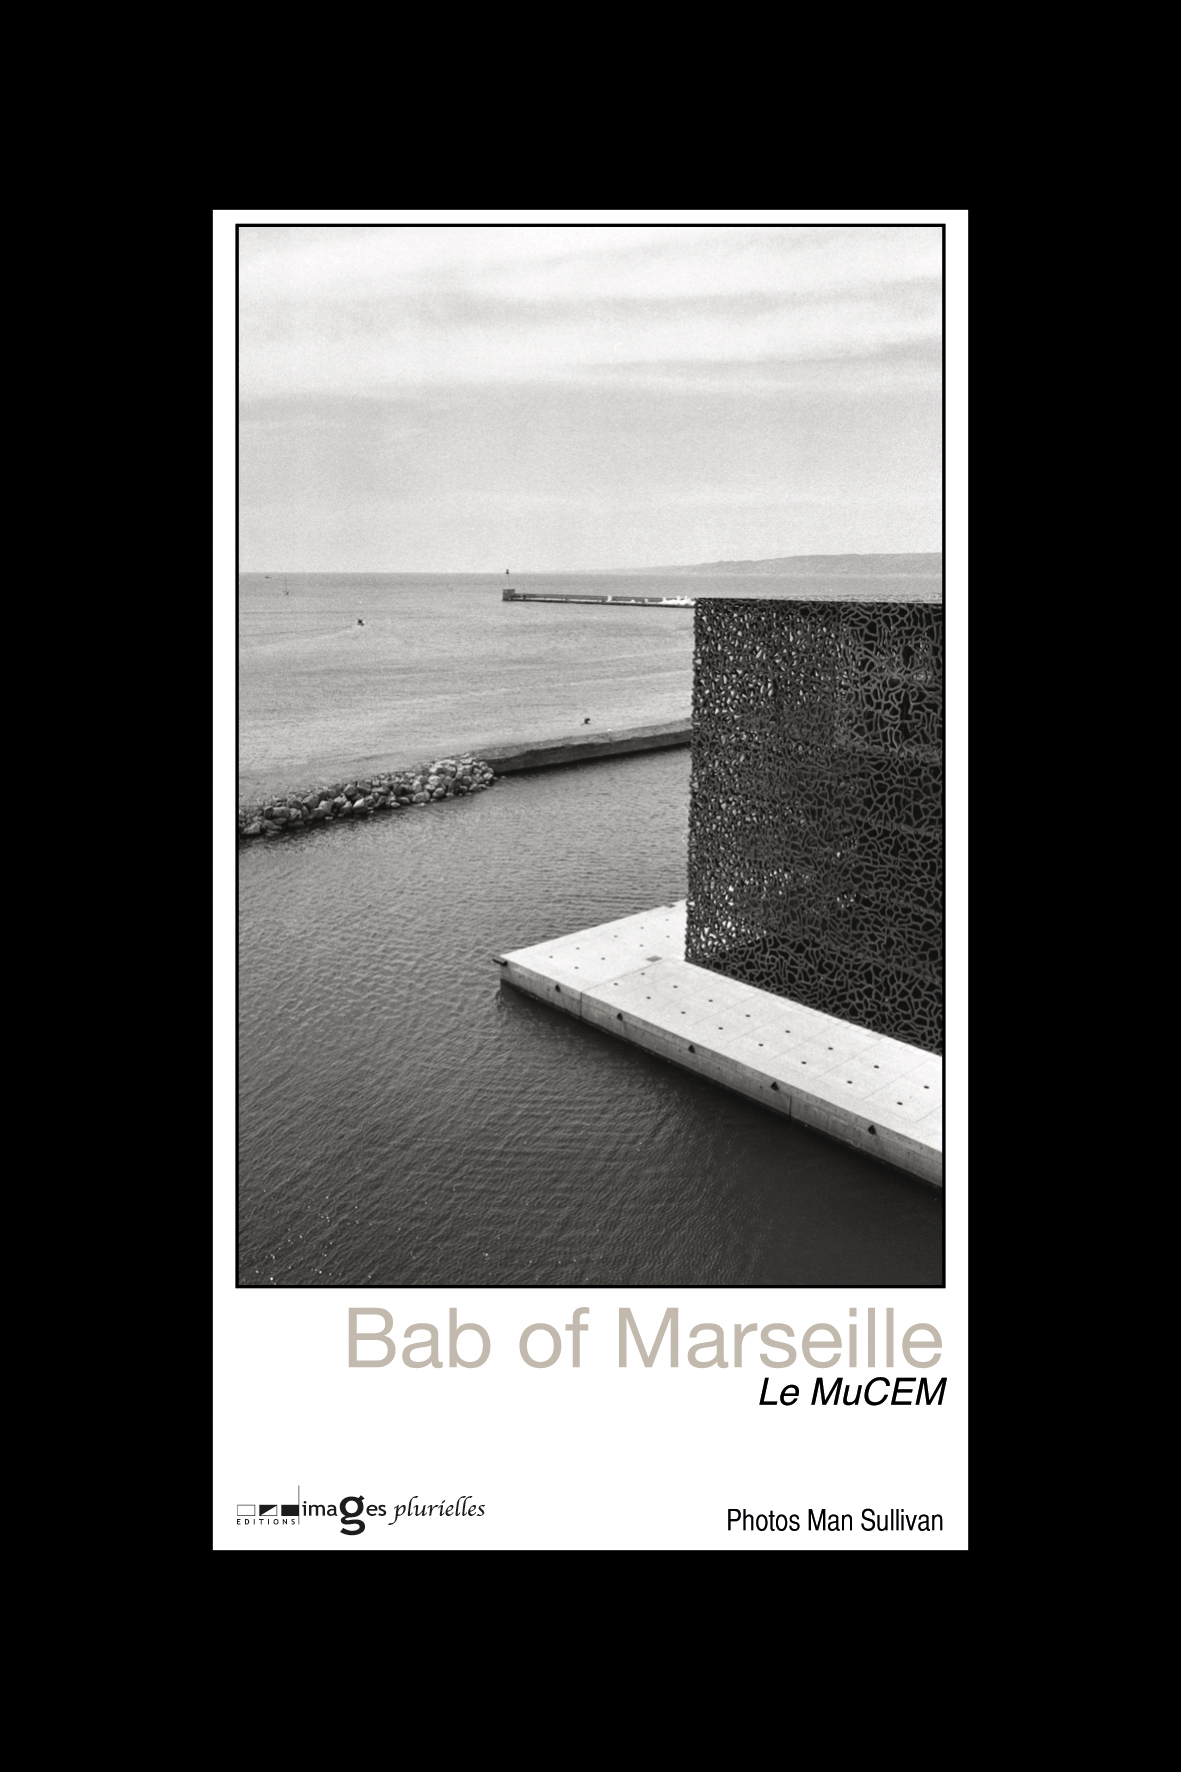 BAB OF MARSEILLE, LE MUCEM